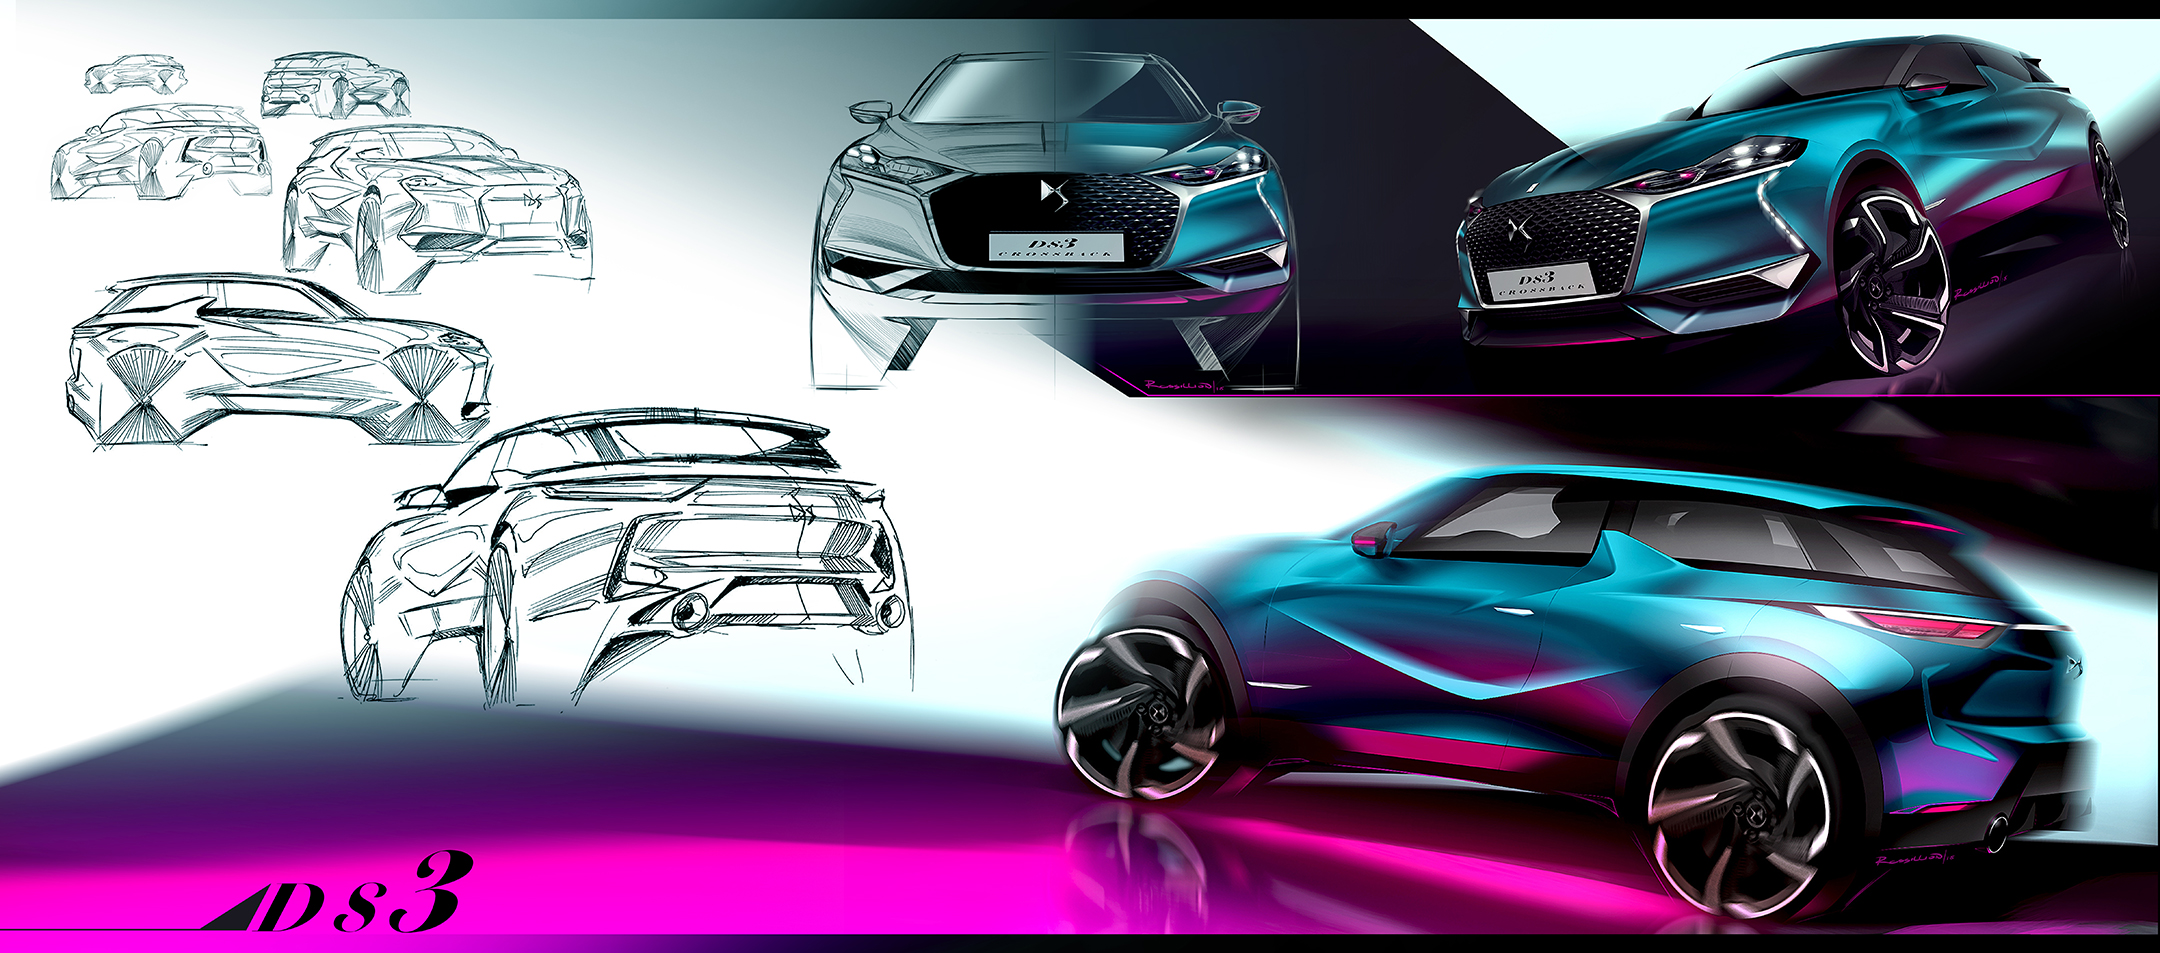 DS 3 Crossback - 2018 - sketch design